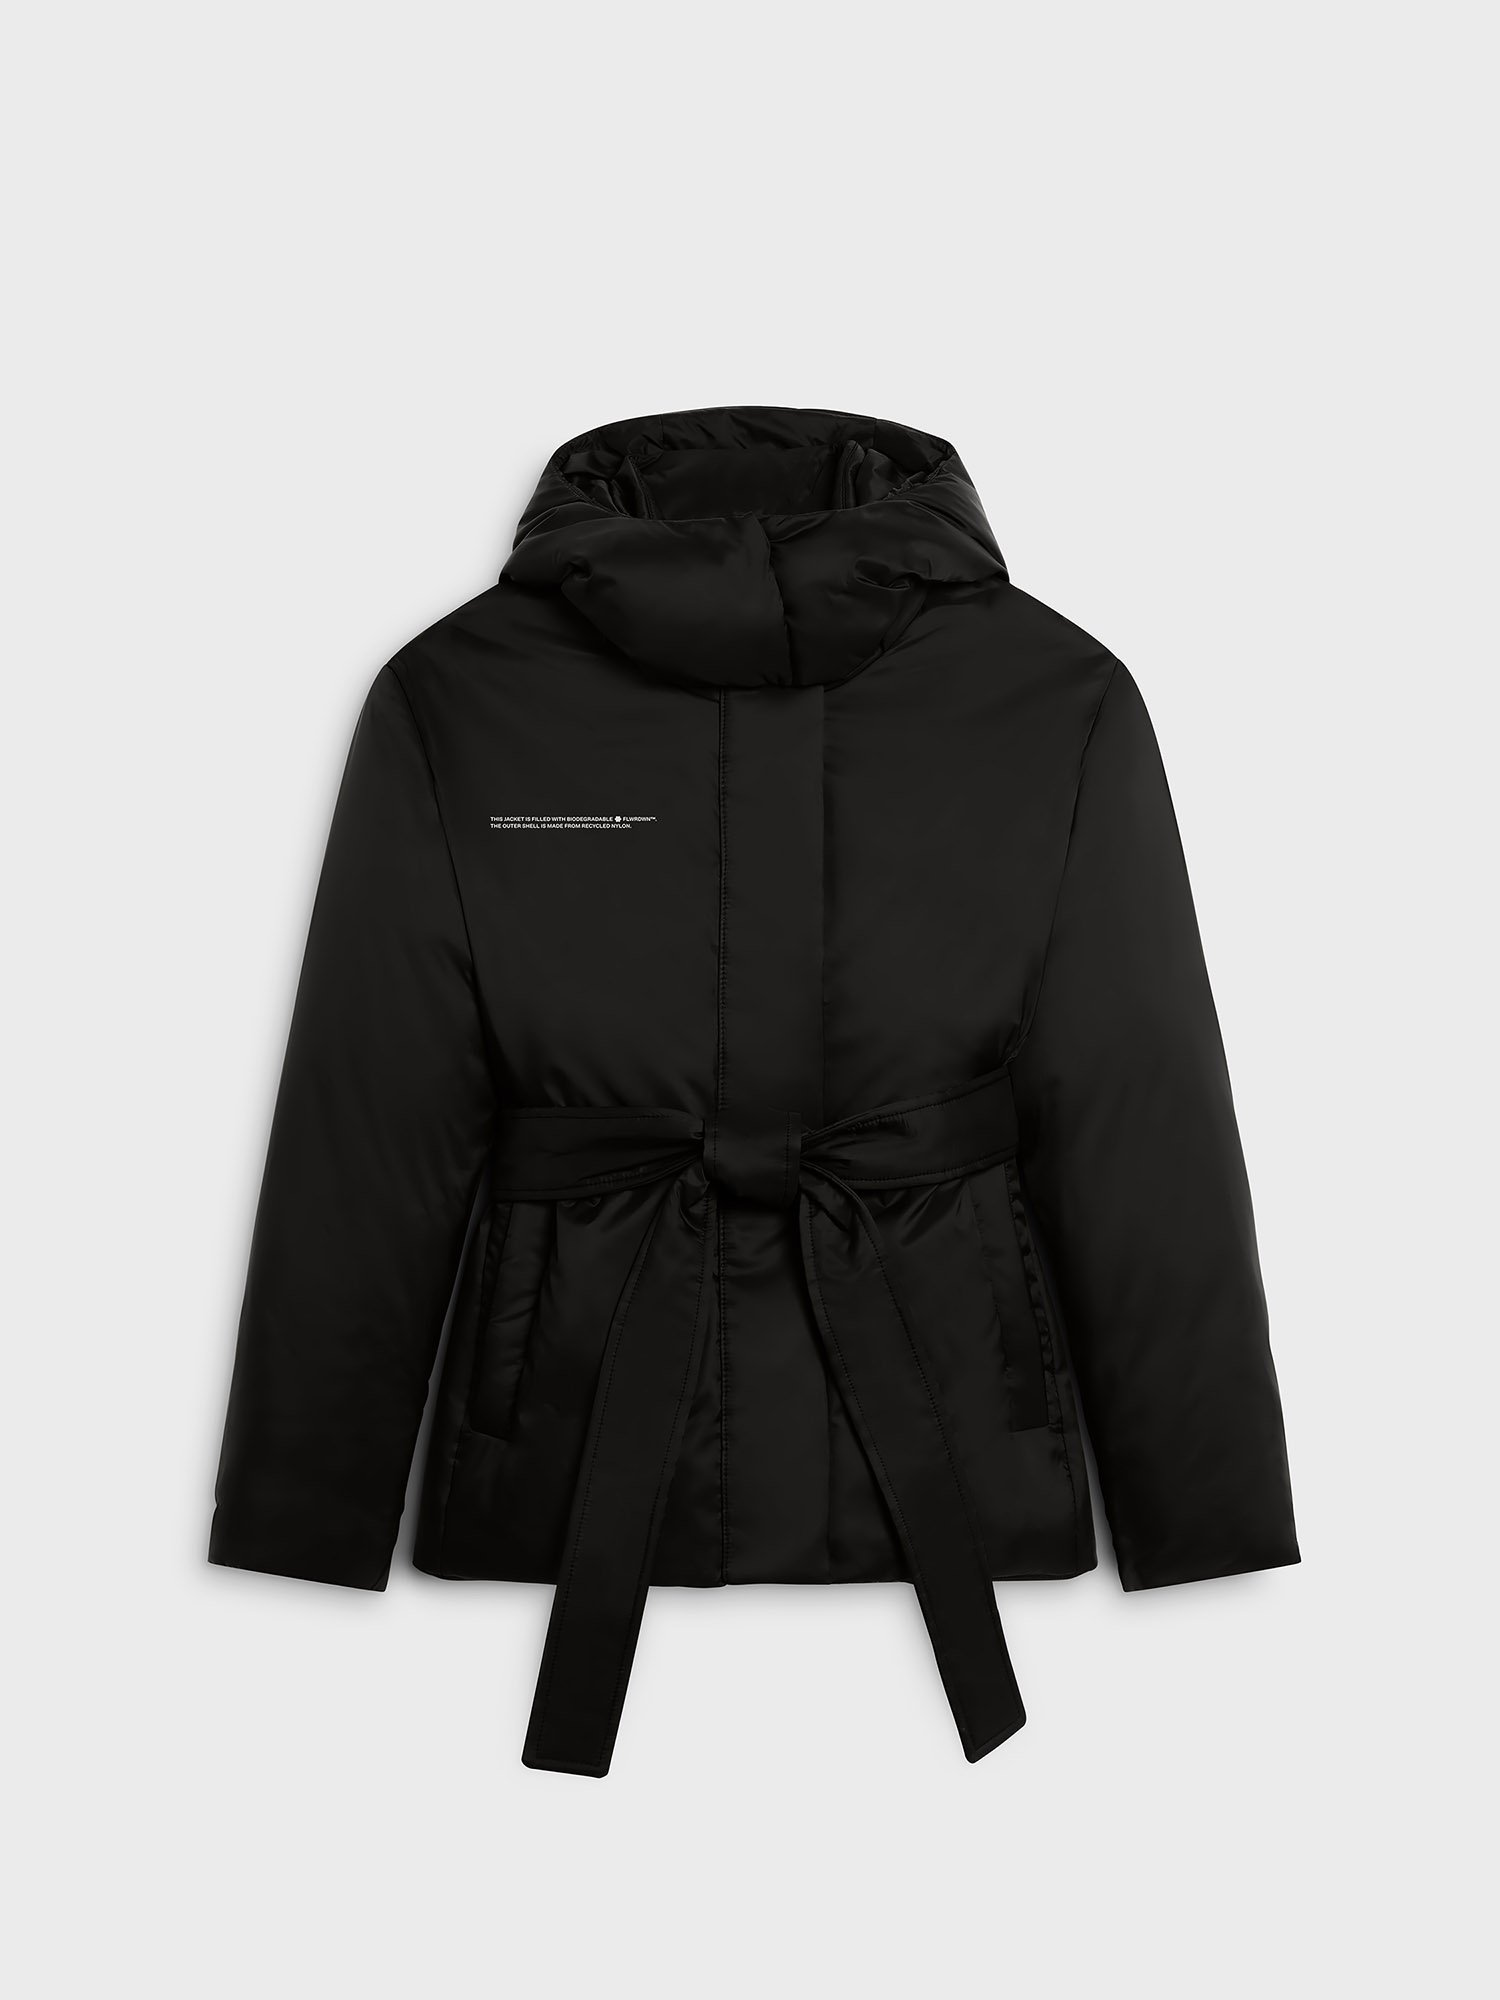 FLWRDWN™ fitted short puffer jacket